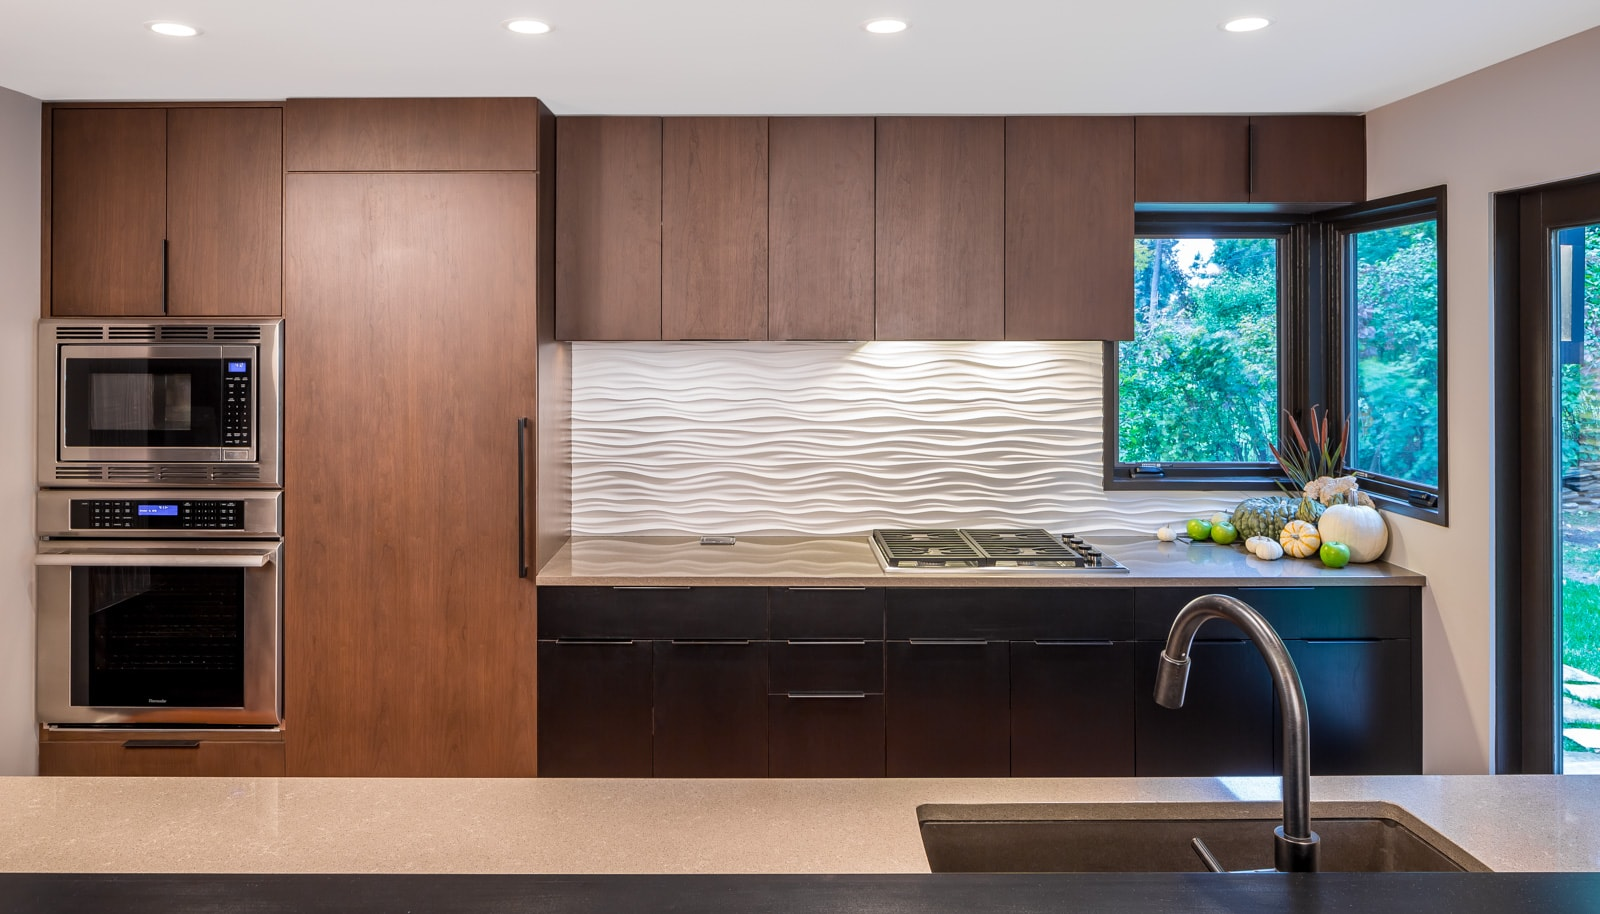 Thinking of a Kitchen Remodel? The Plan is the Thing.